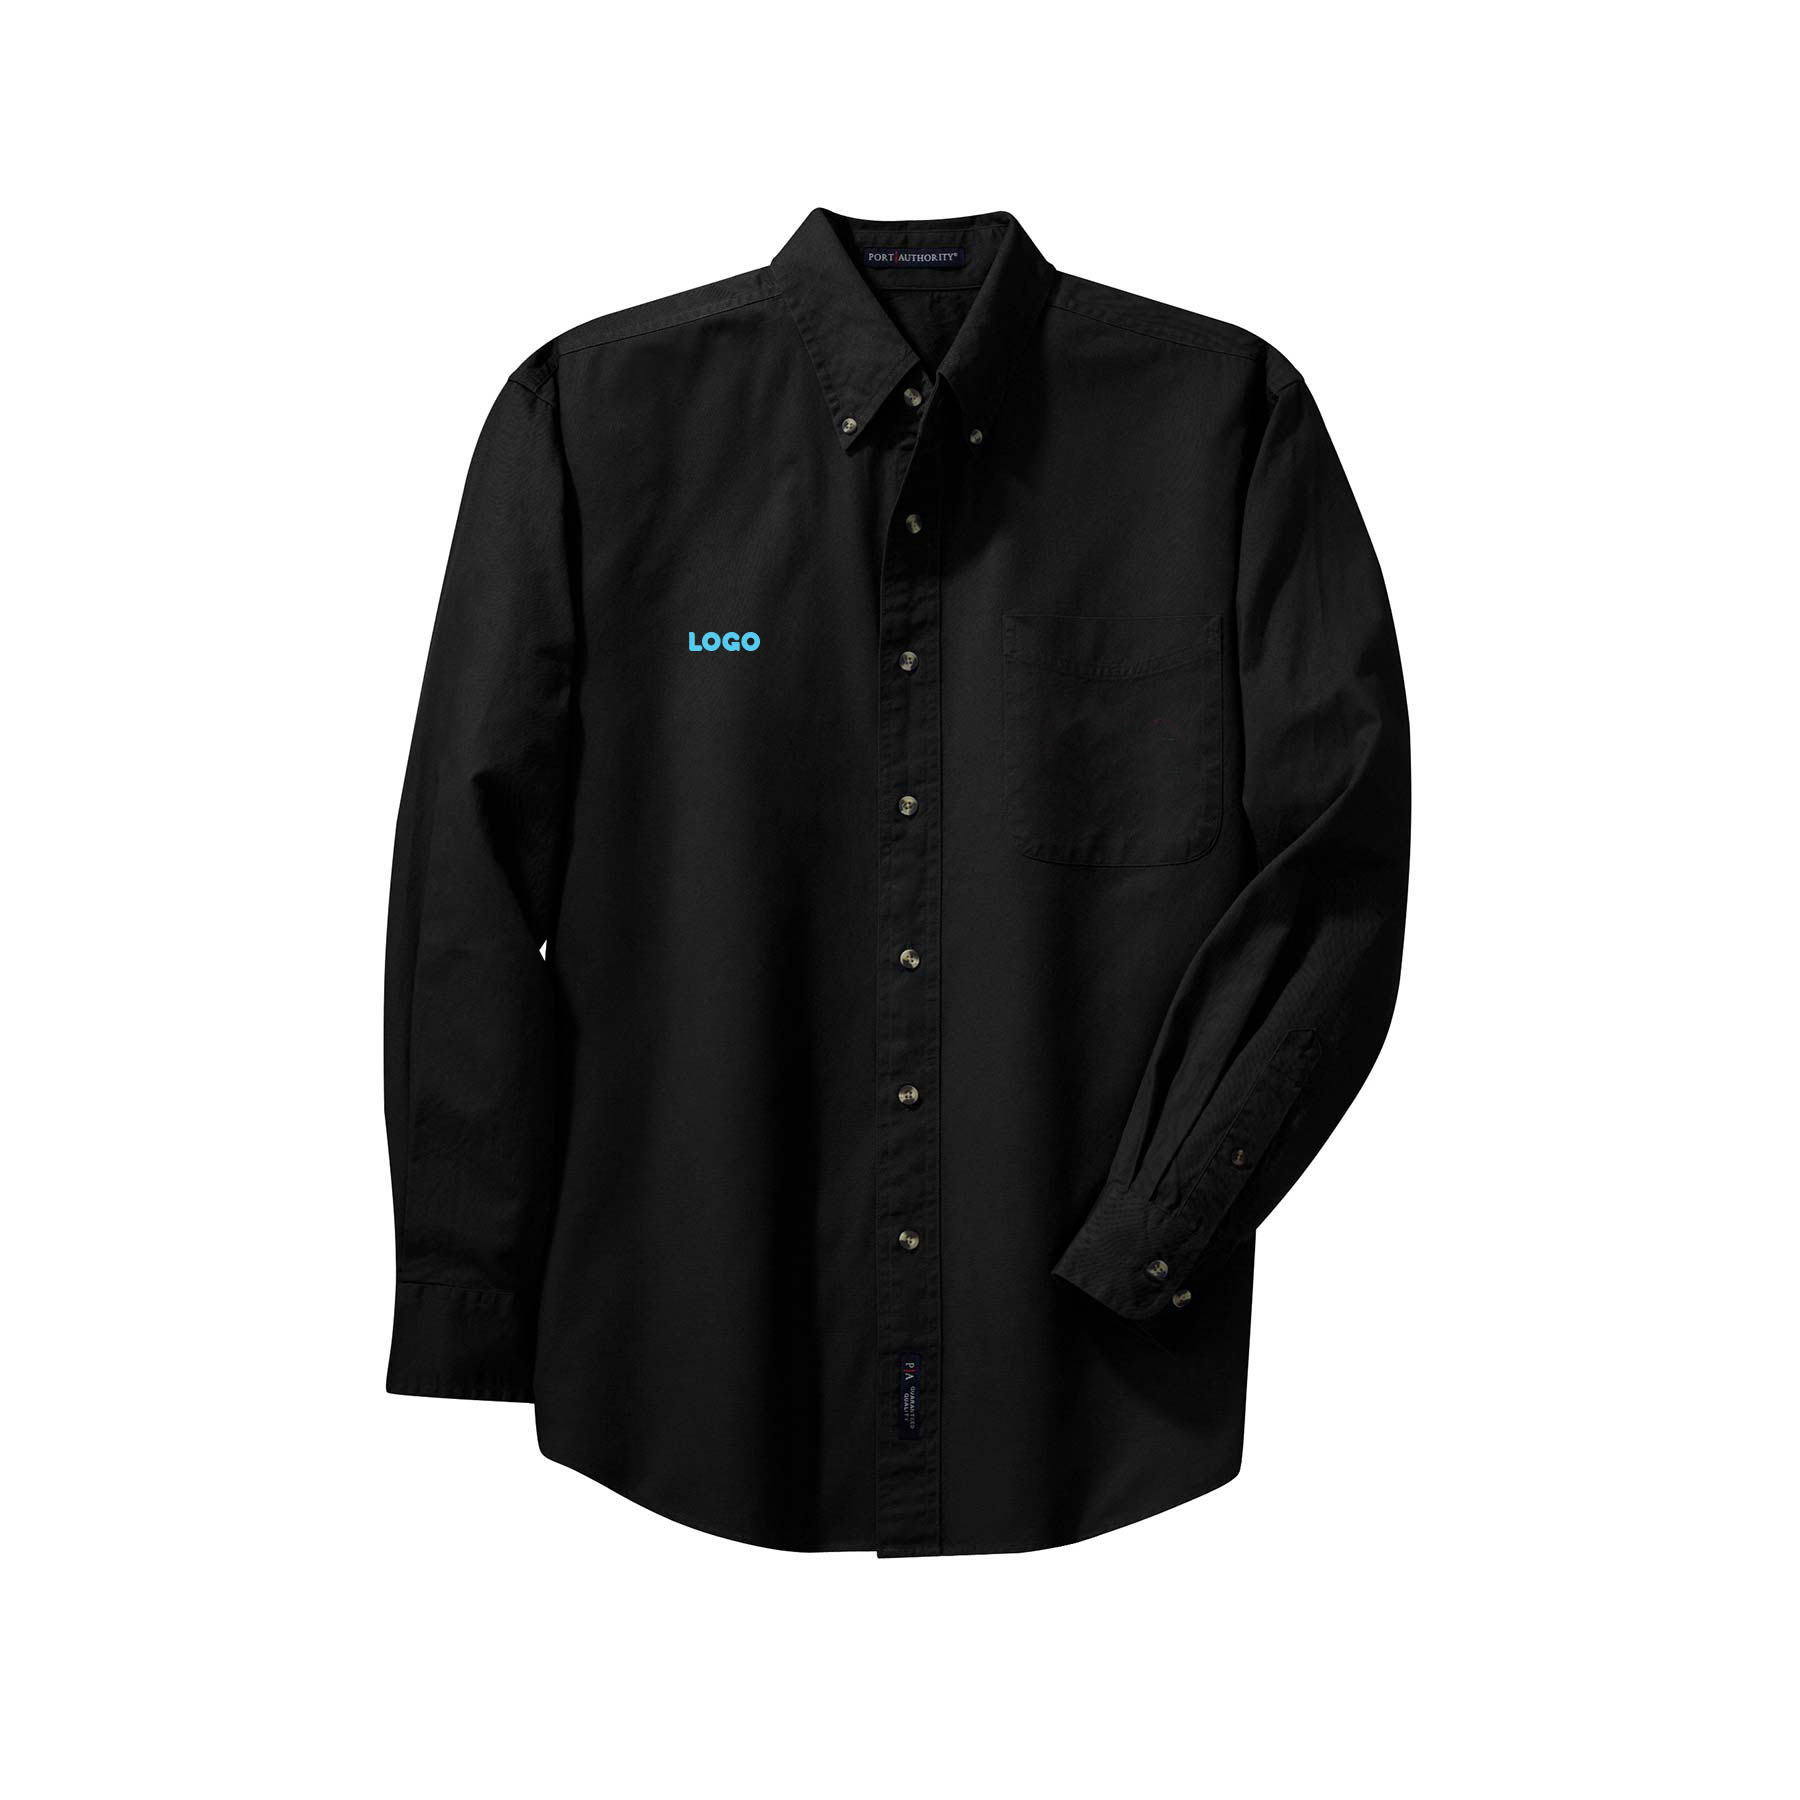 137902 long sleeve twill shirt one location embroidered up to 4k stitches